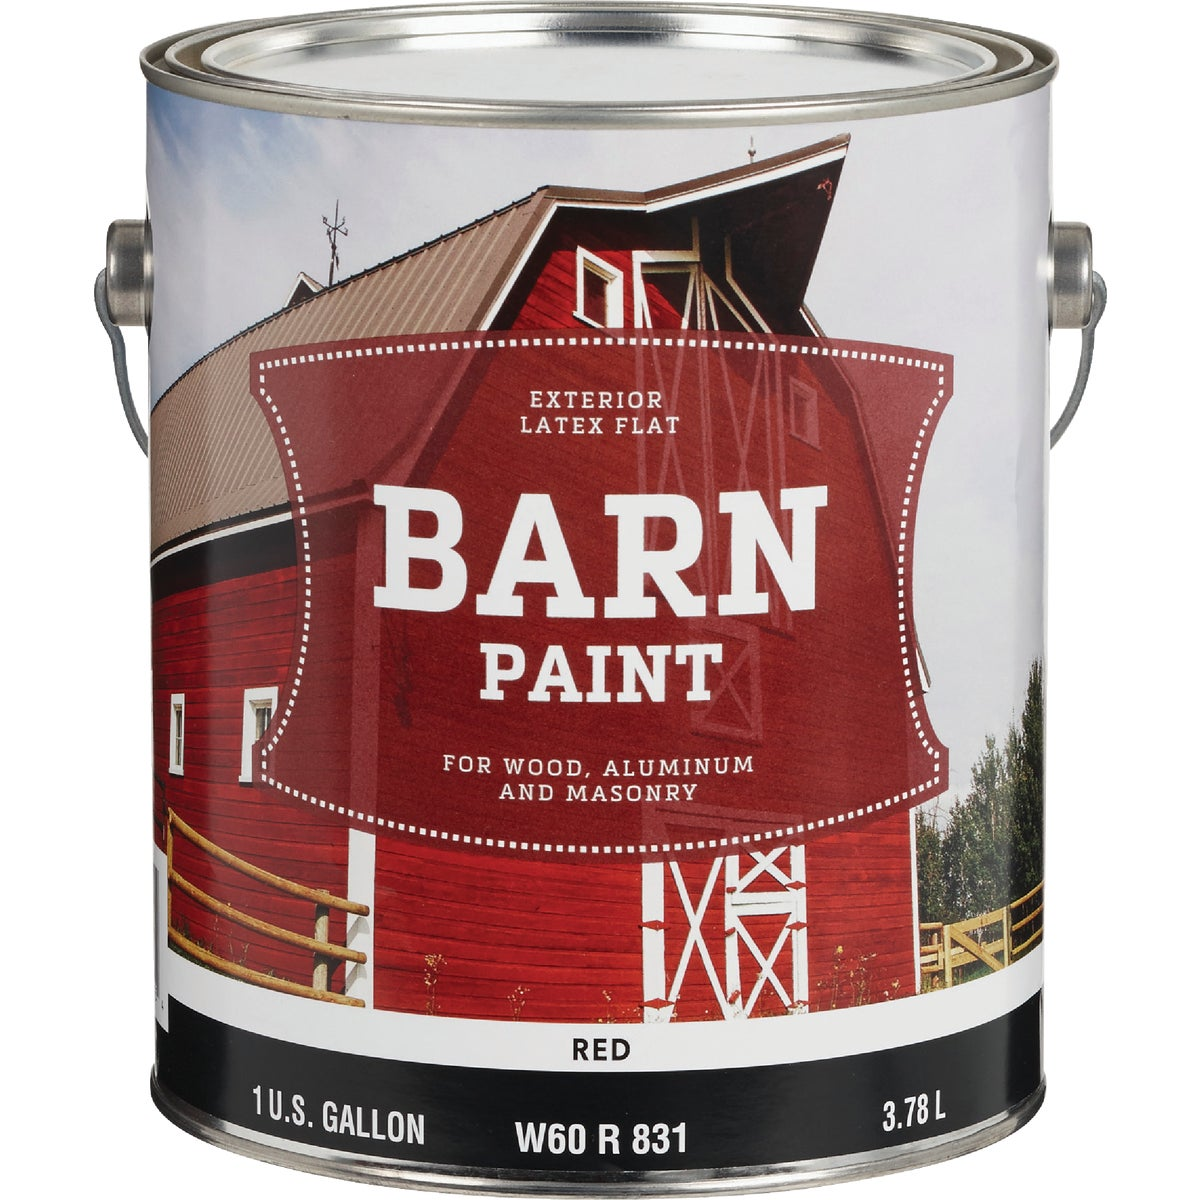 FLAT LTX RED BARN PAINT - W60R00732-16 by Do it Best